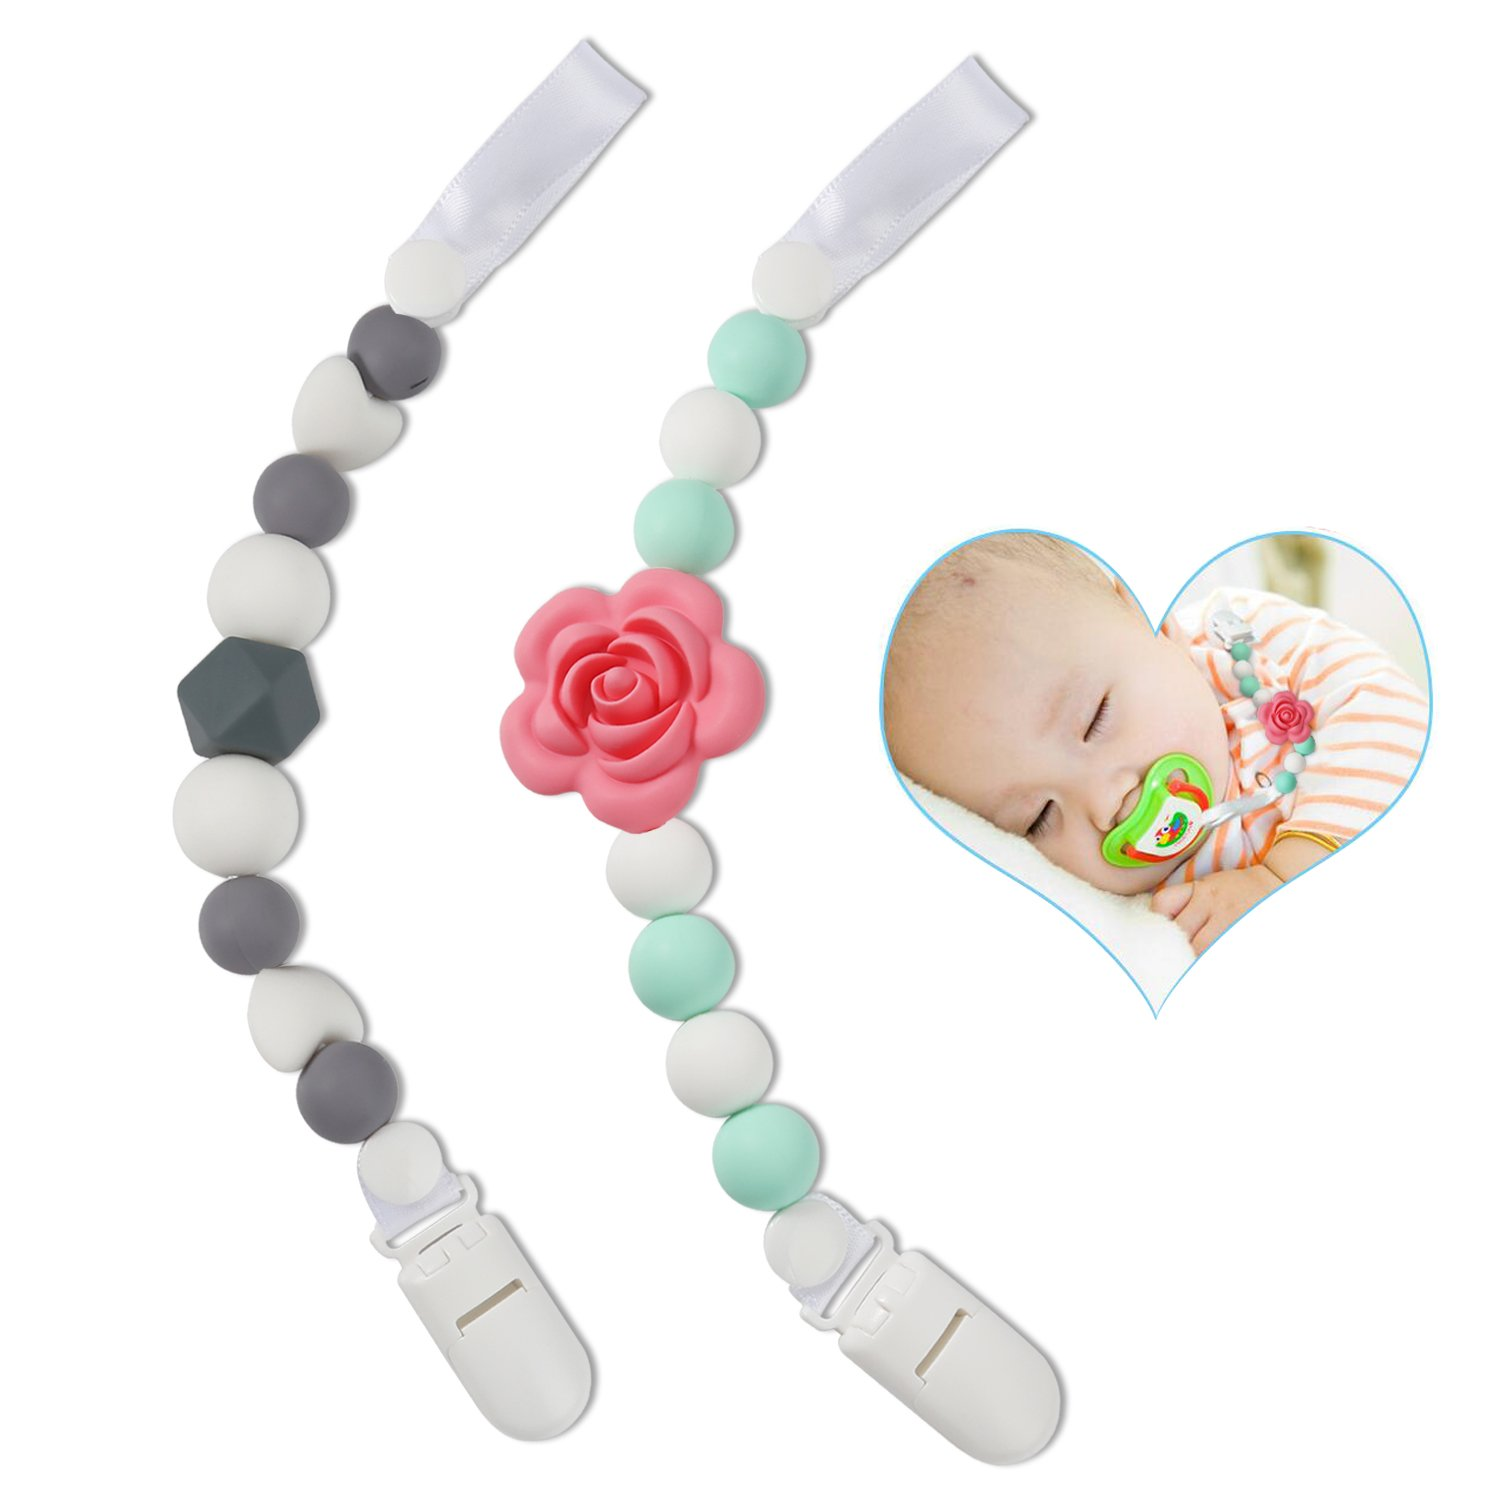 Pacifier Clip, CLEYCYE Baby Pacifier Clip – Teething BPA Free Bead Silicone Pacifier Clip Boy/Girl - with Binky Holder Universal Strap/Holder/Leash for Mom, Soothies, Teether Toys, Drool Bibs, 2pack